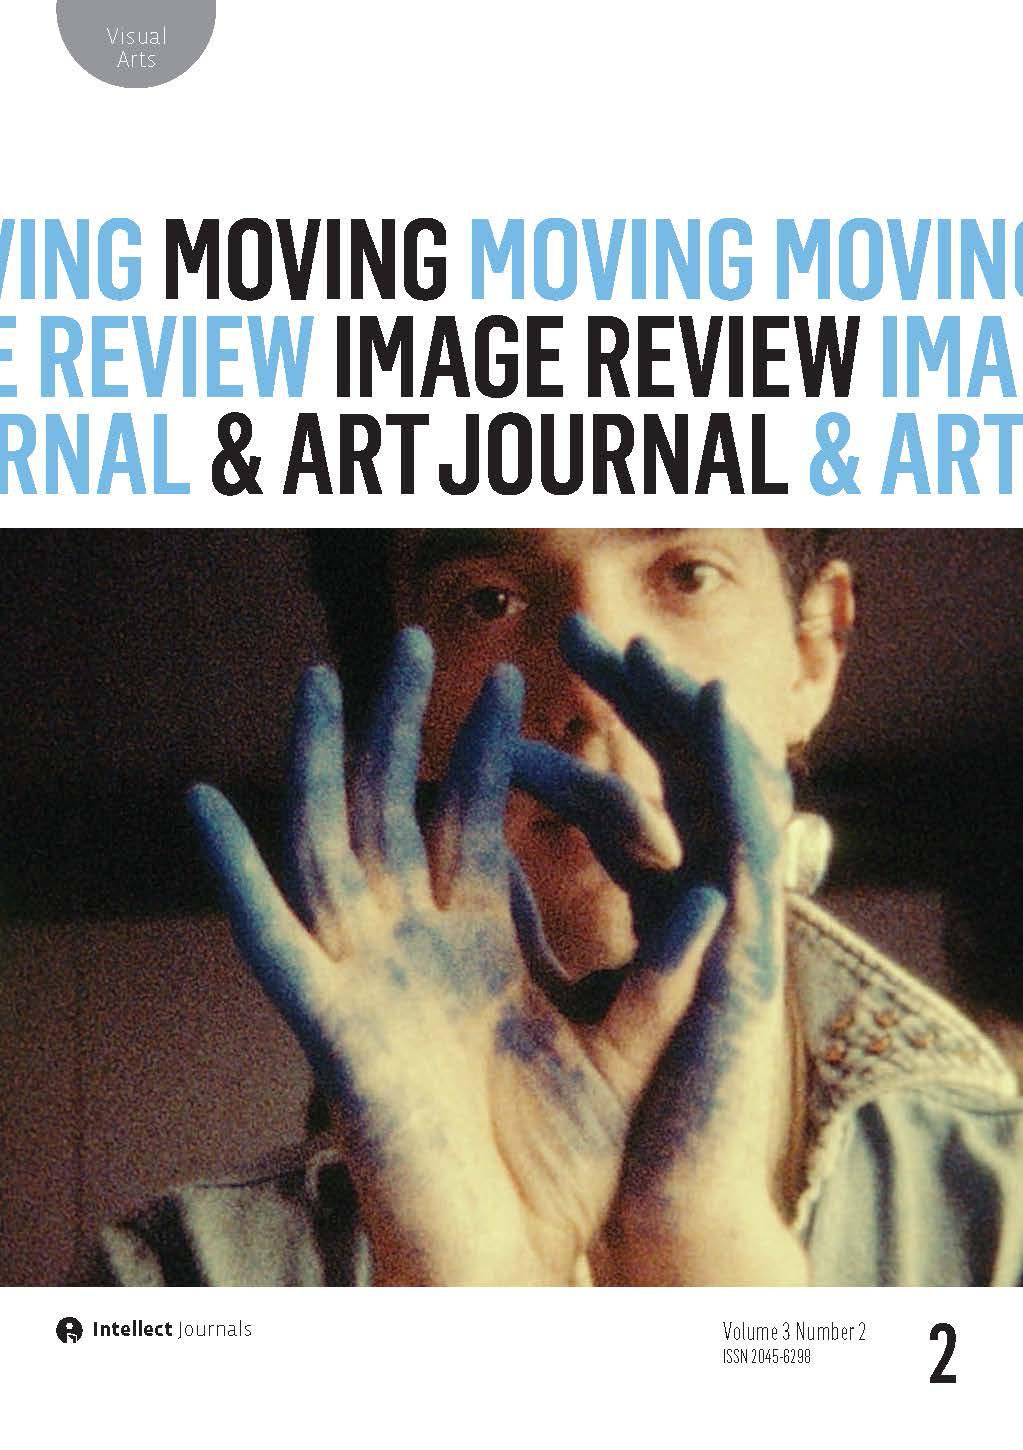 Buy The Moving Image Review & Art Journal - MIRAJ 3.2